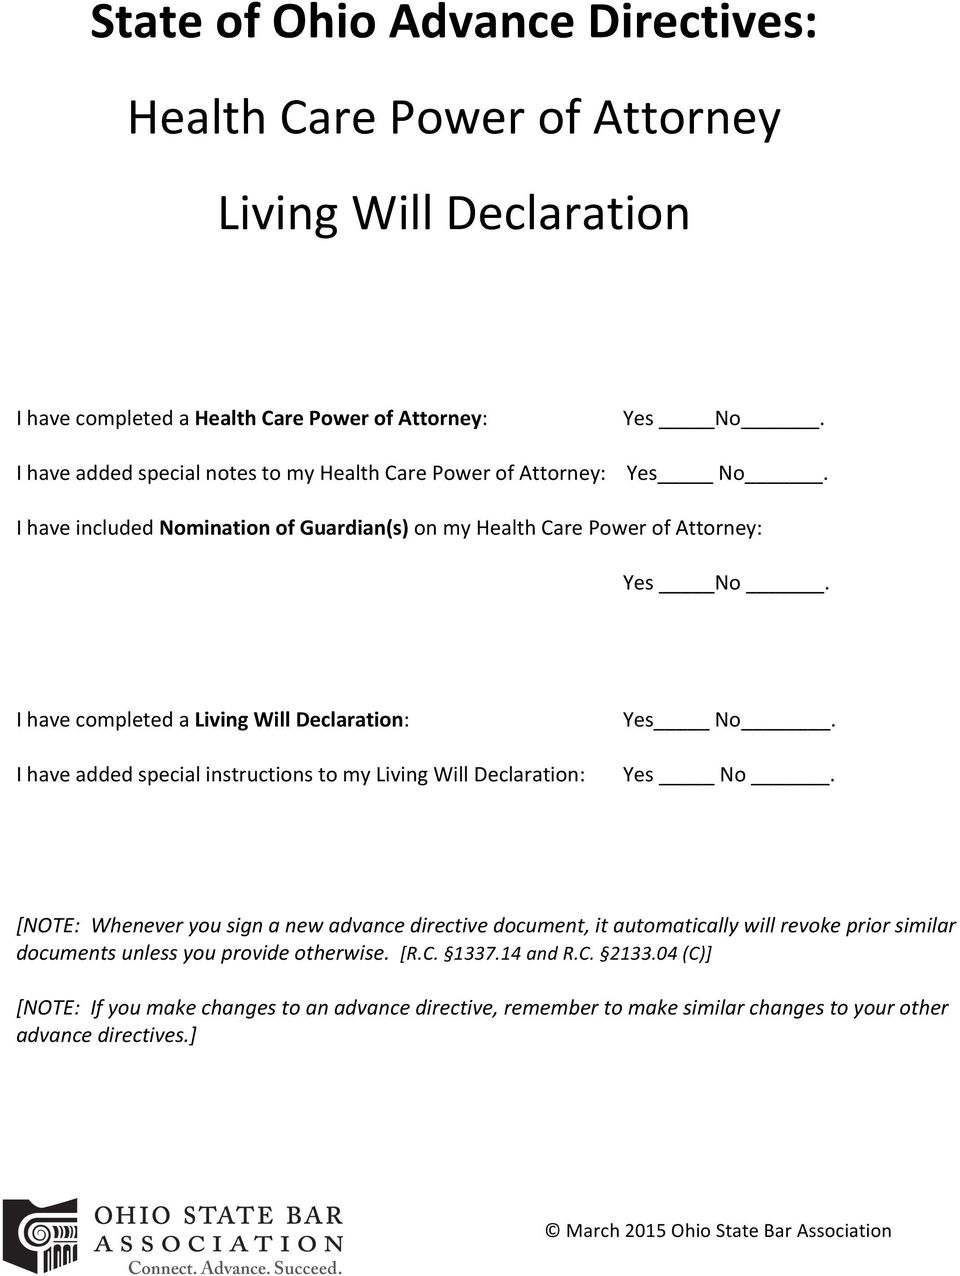 I have completed a Living Will Declaration: I have added special instructions to my Living Will Declaration: Yes No.